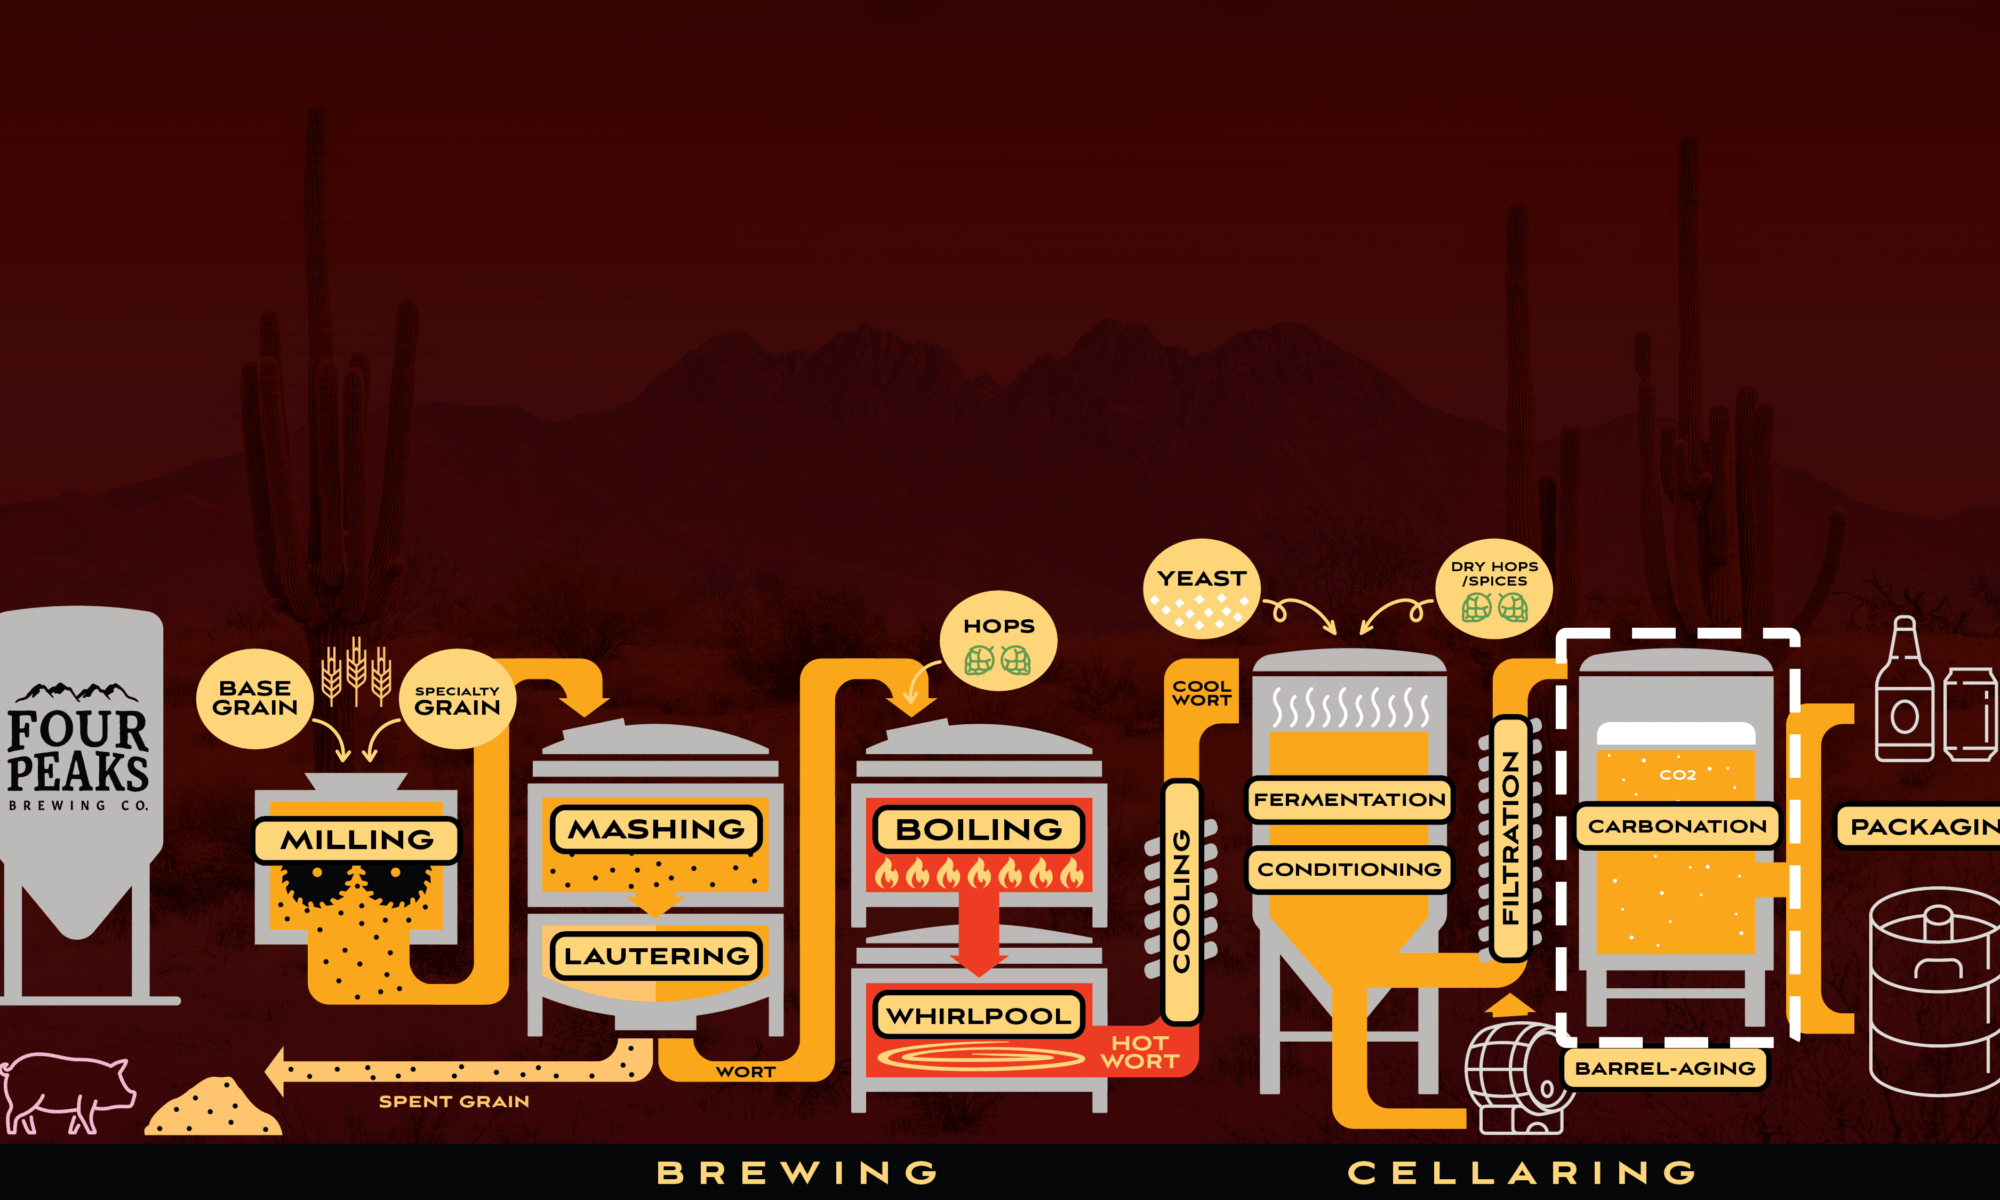 Brewing Process - Carbonation